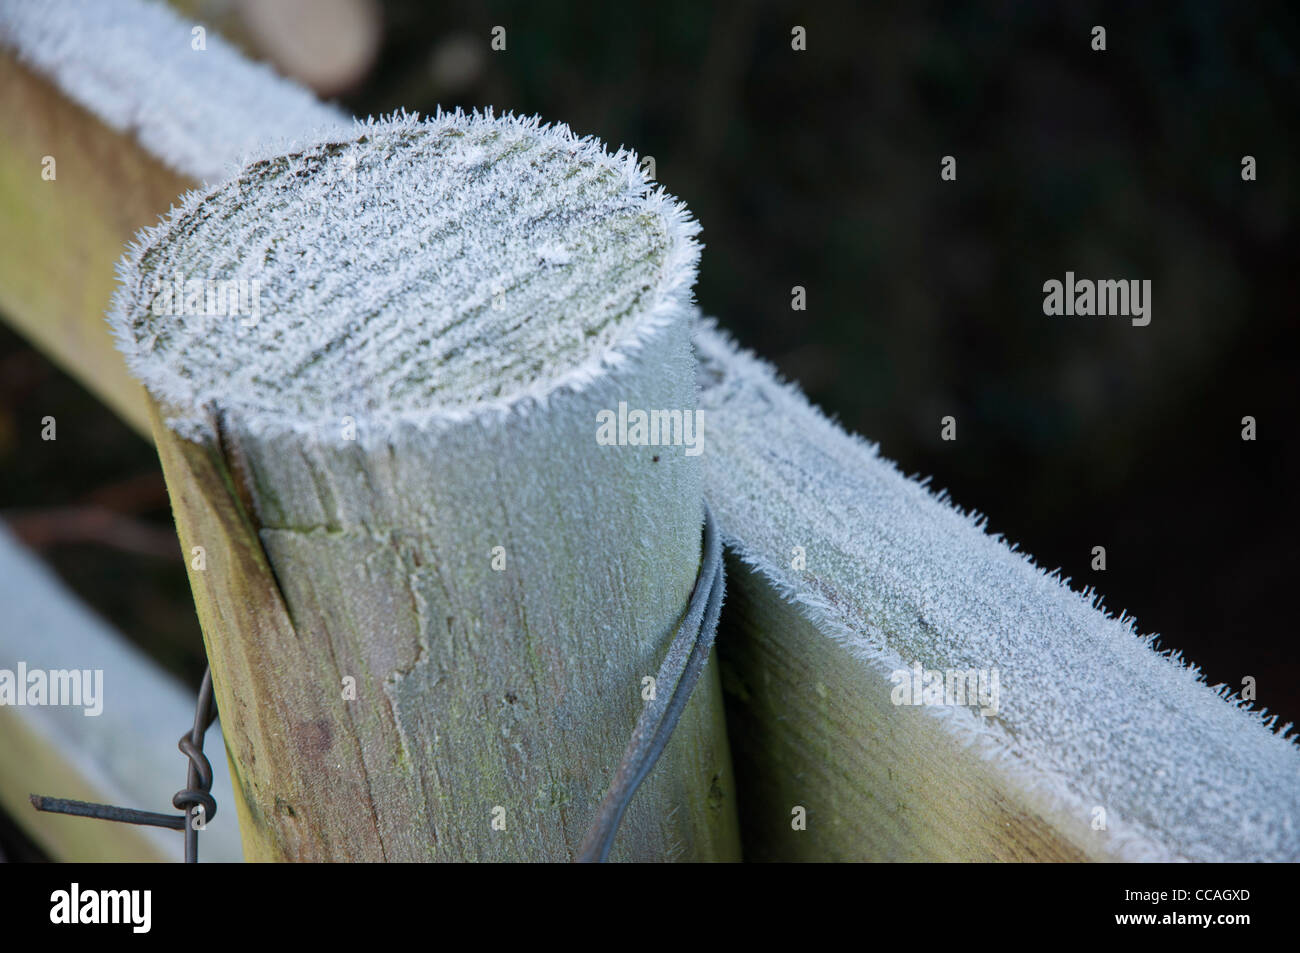 frost covered wooden fence post and rail in close up - Stock Image